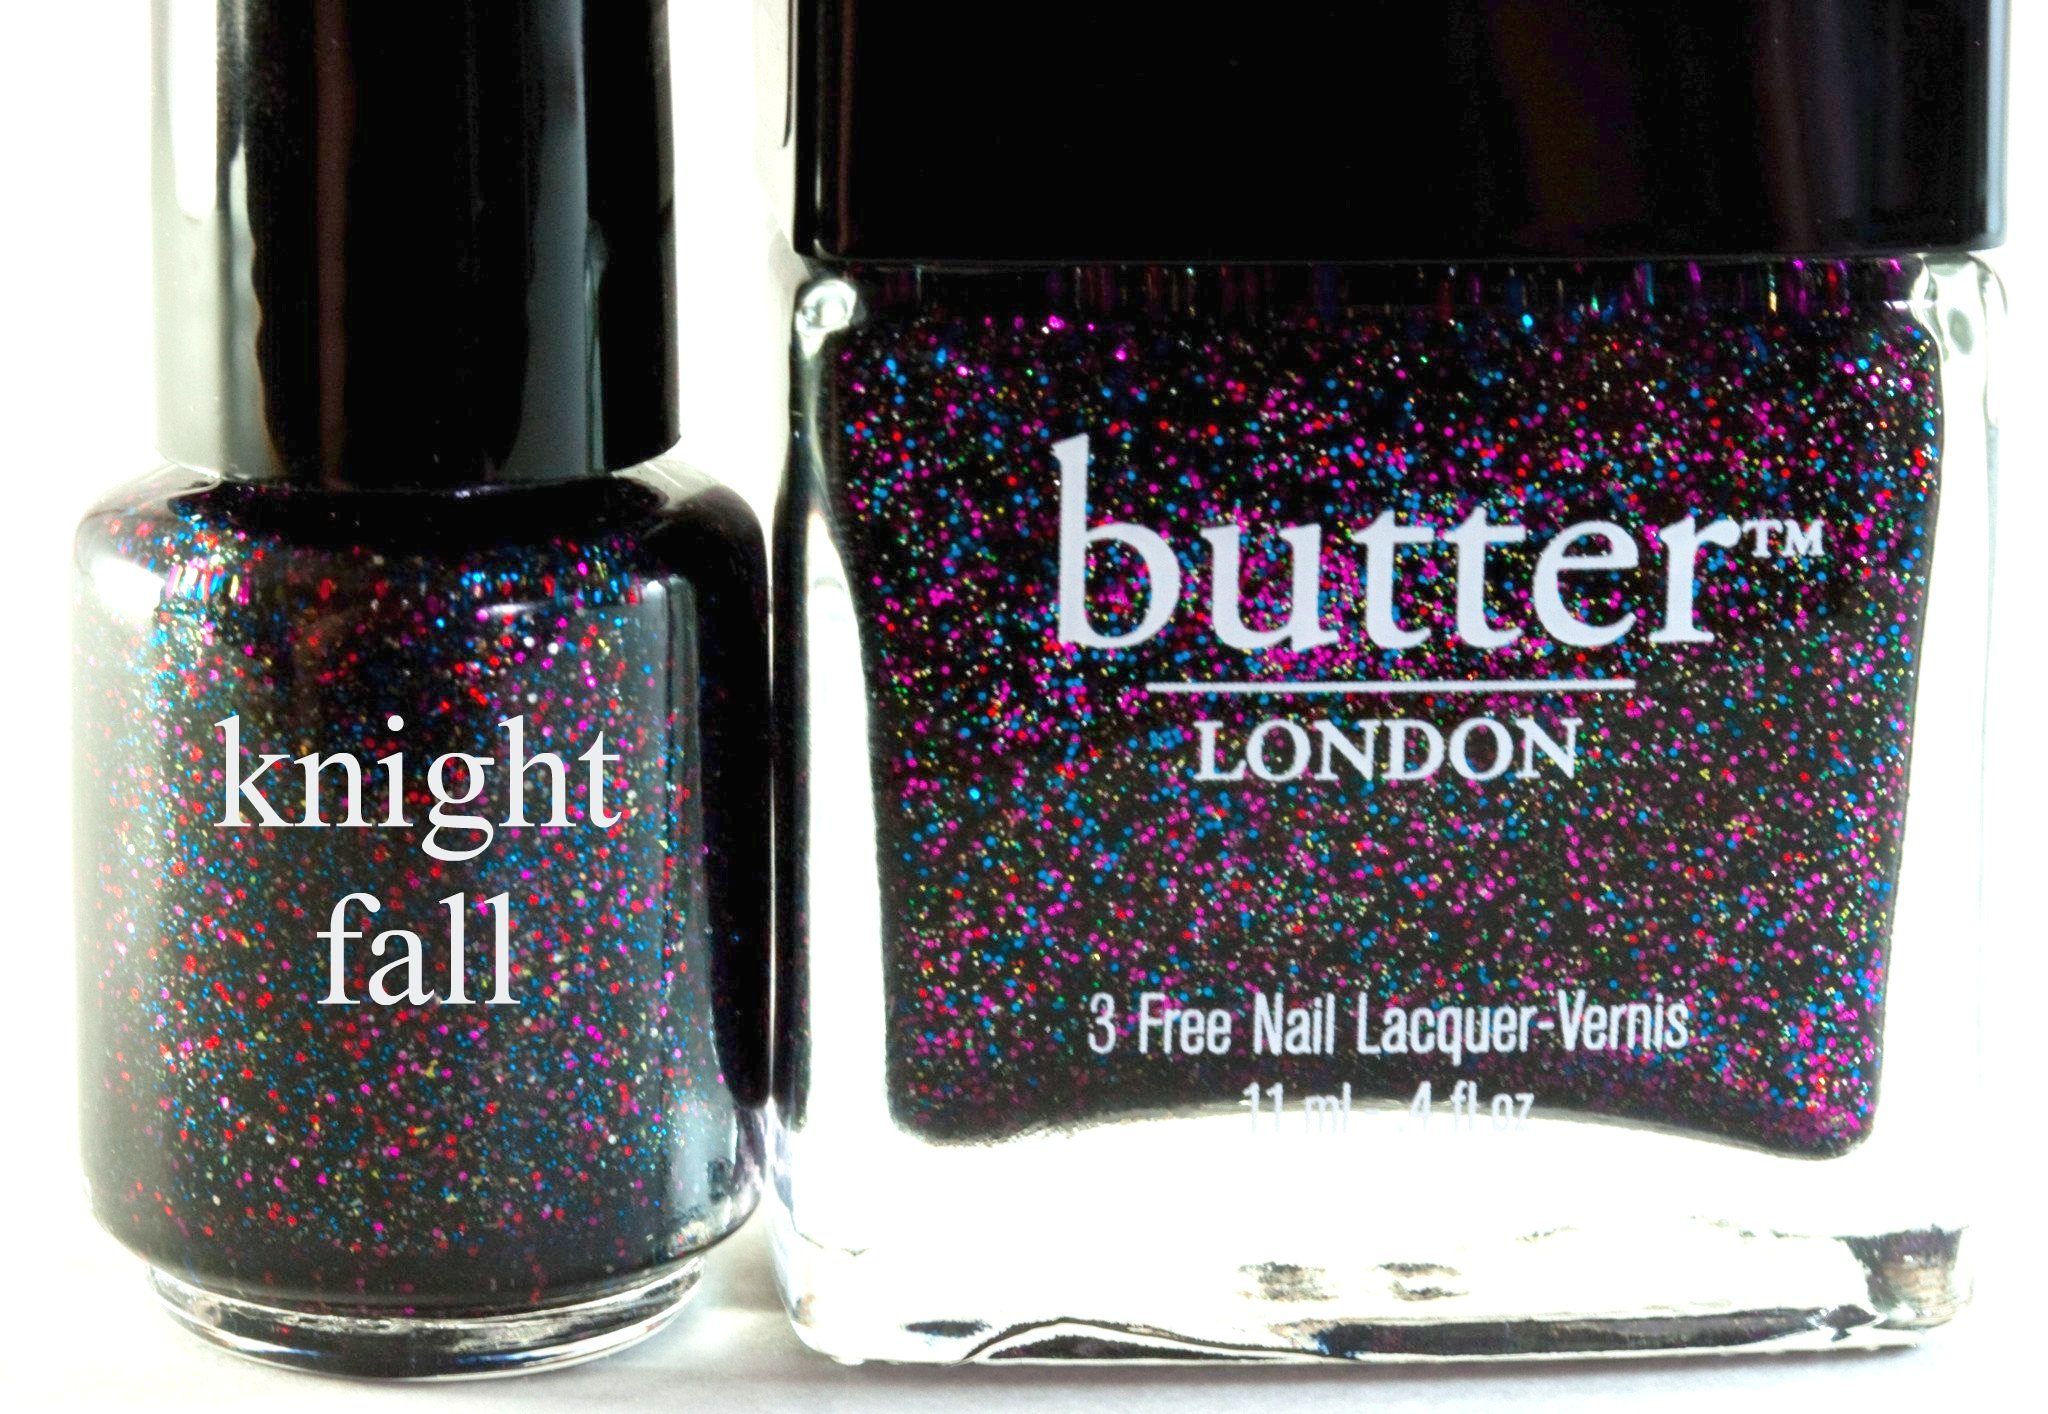 Knight Fall: Franken Dupe for Butter London's The Black Knight